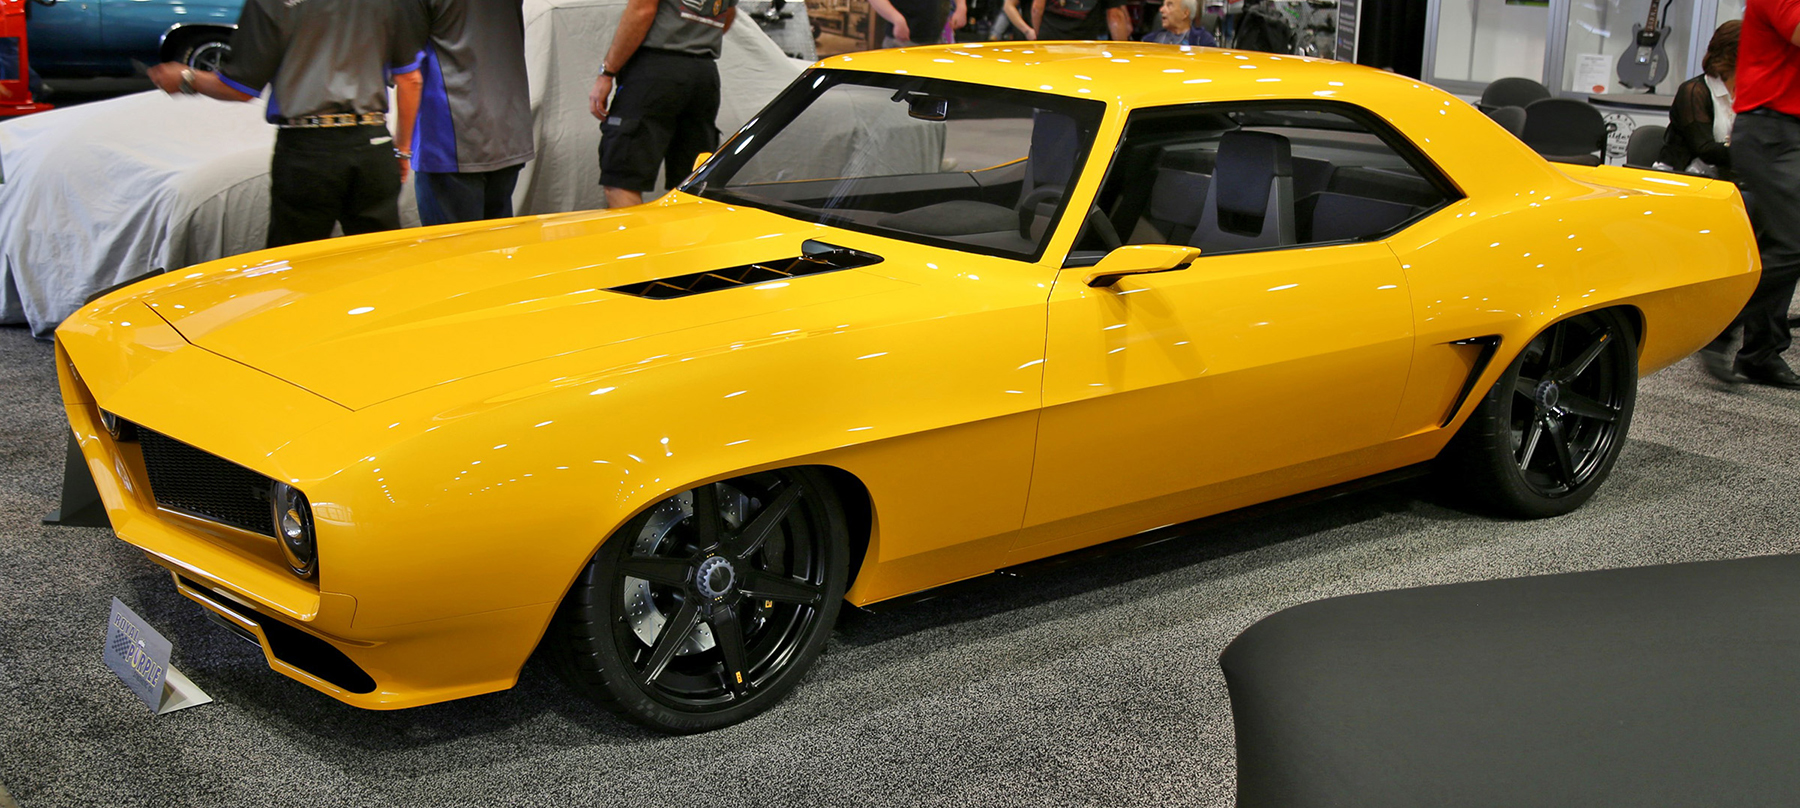 Ppg Wins Big At 2016 Sema Show Ppg Paints Coatings And Materials